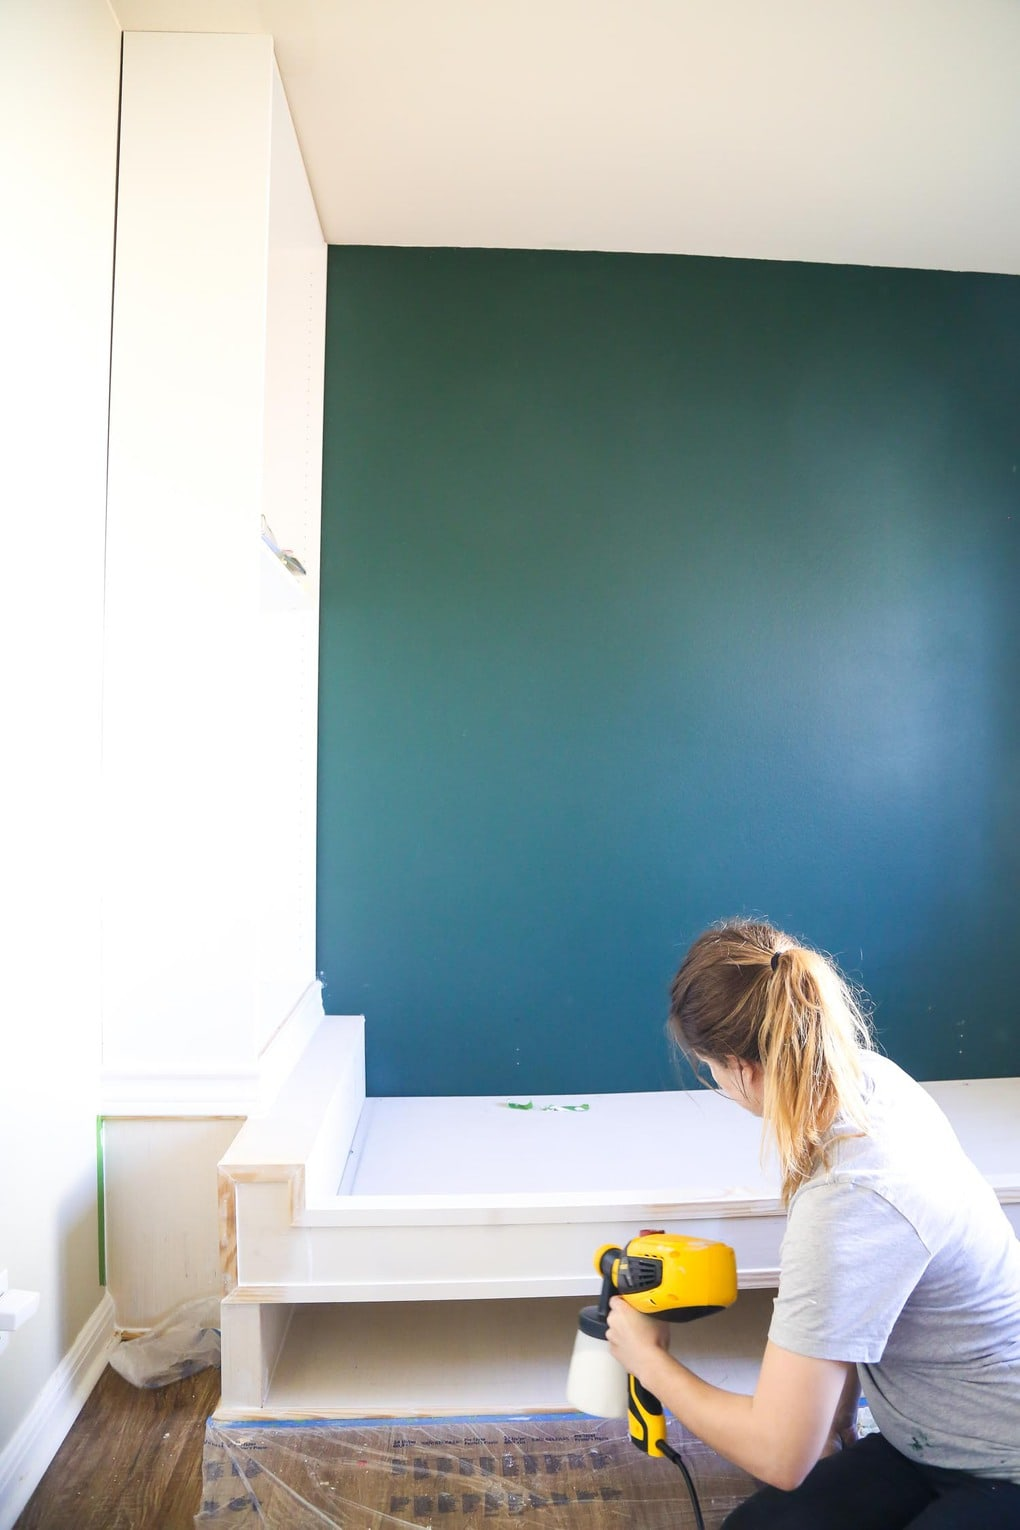 Woman using paint sprayer to paint DIY build in shelves